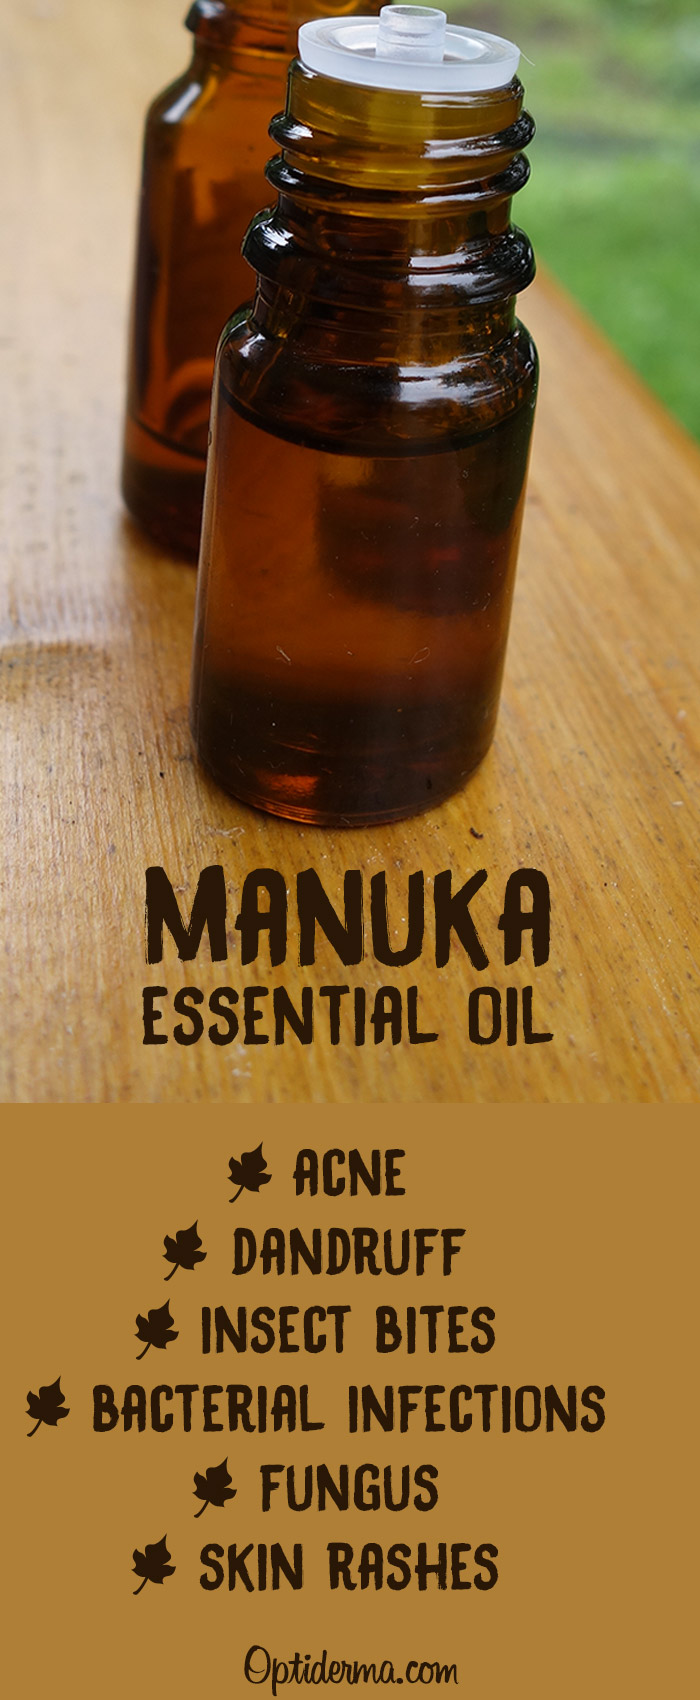 Health Benefits of Manuka Oil